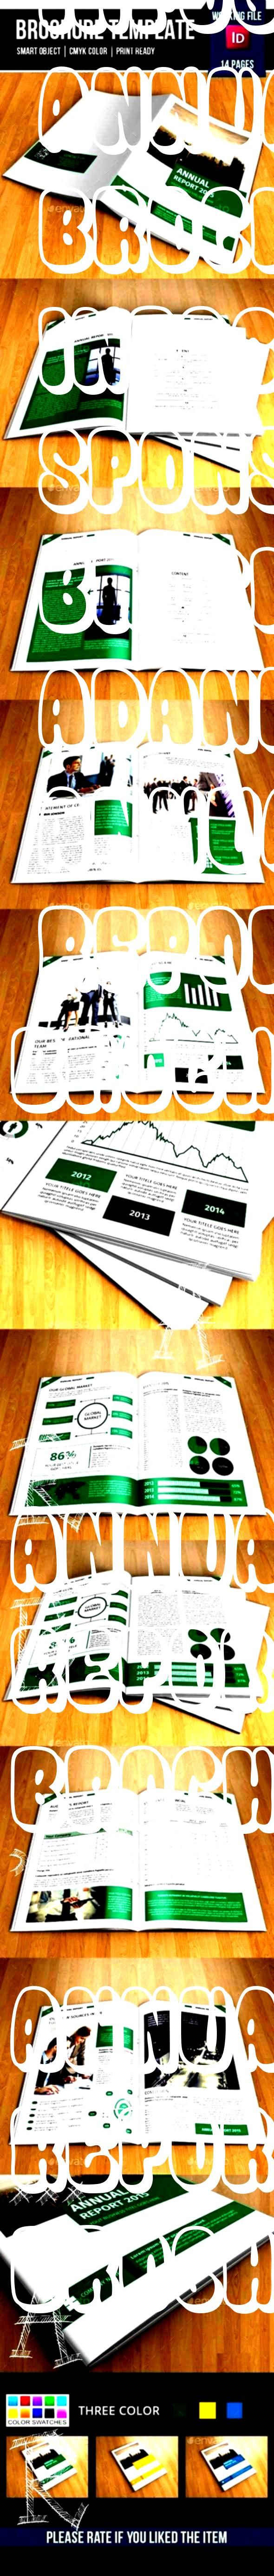 BrochureV233   Annual Report BrochureV233  Annual Report BrochureV233   Annual Report BrochureV233 Report BrochureV233   Annual Report BrochureV233  Annual Report Brochur...